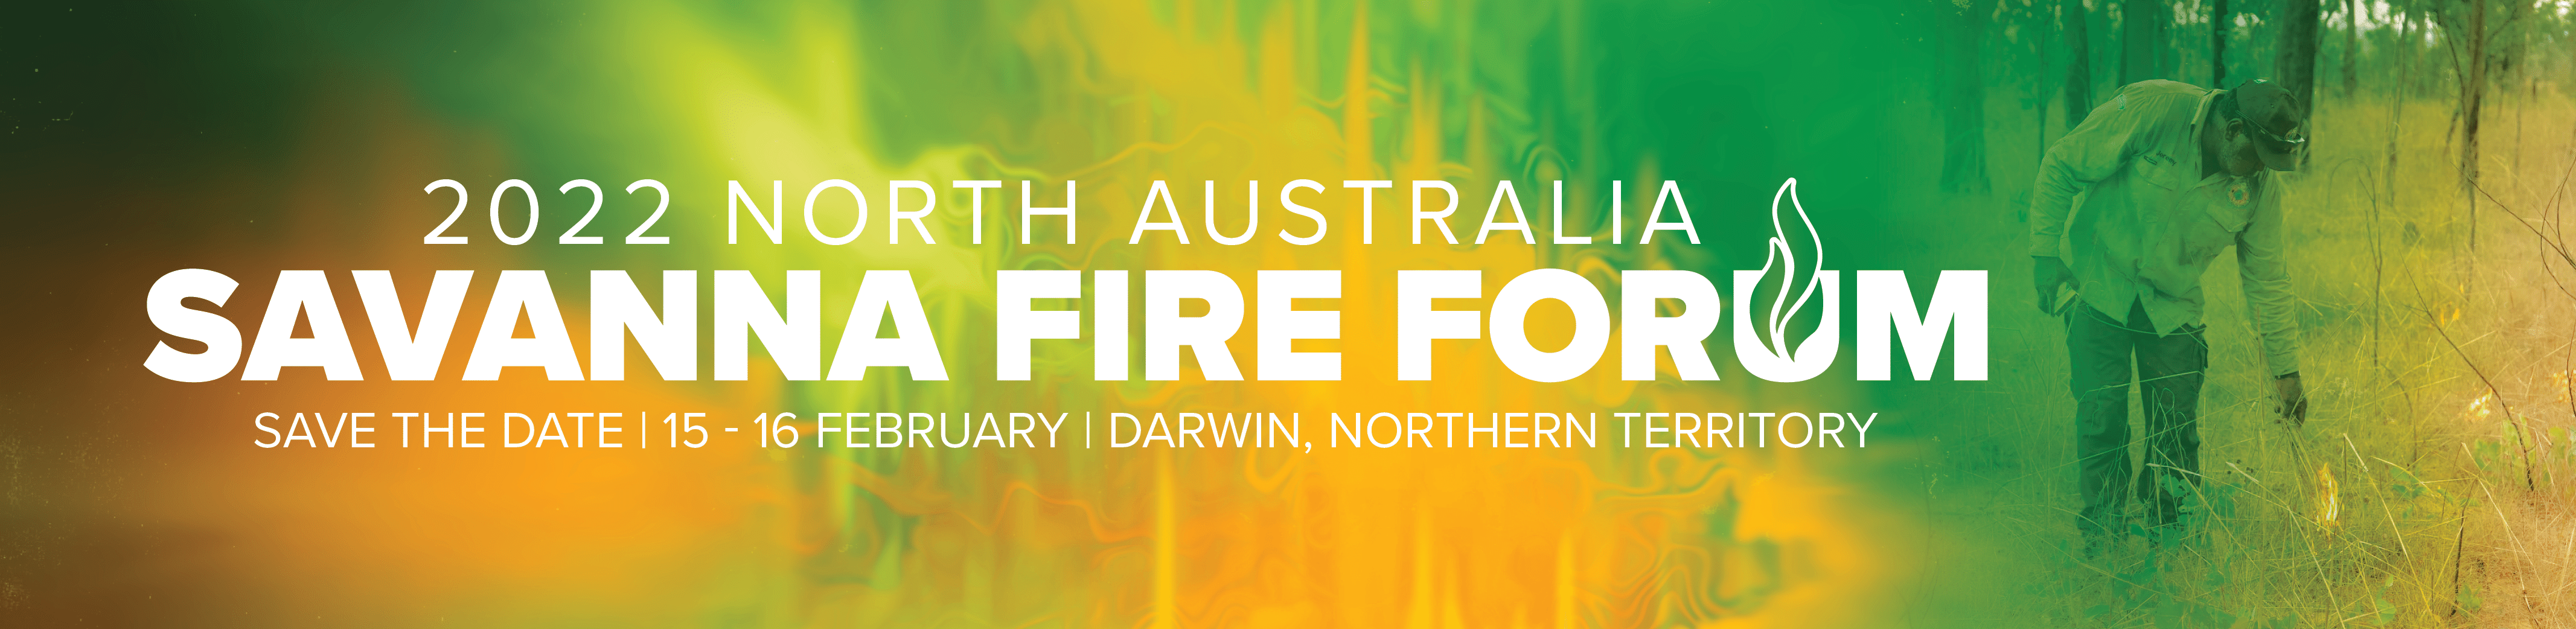 Save the date - 2022 Savanna Fire Forum dates have been announced